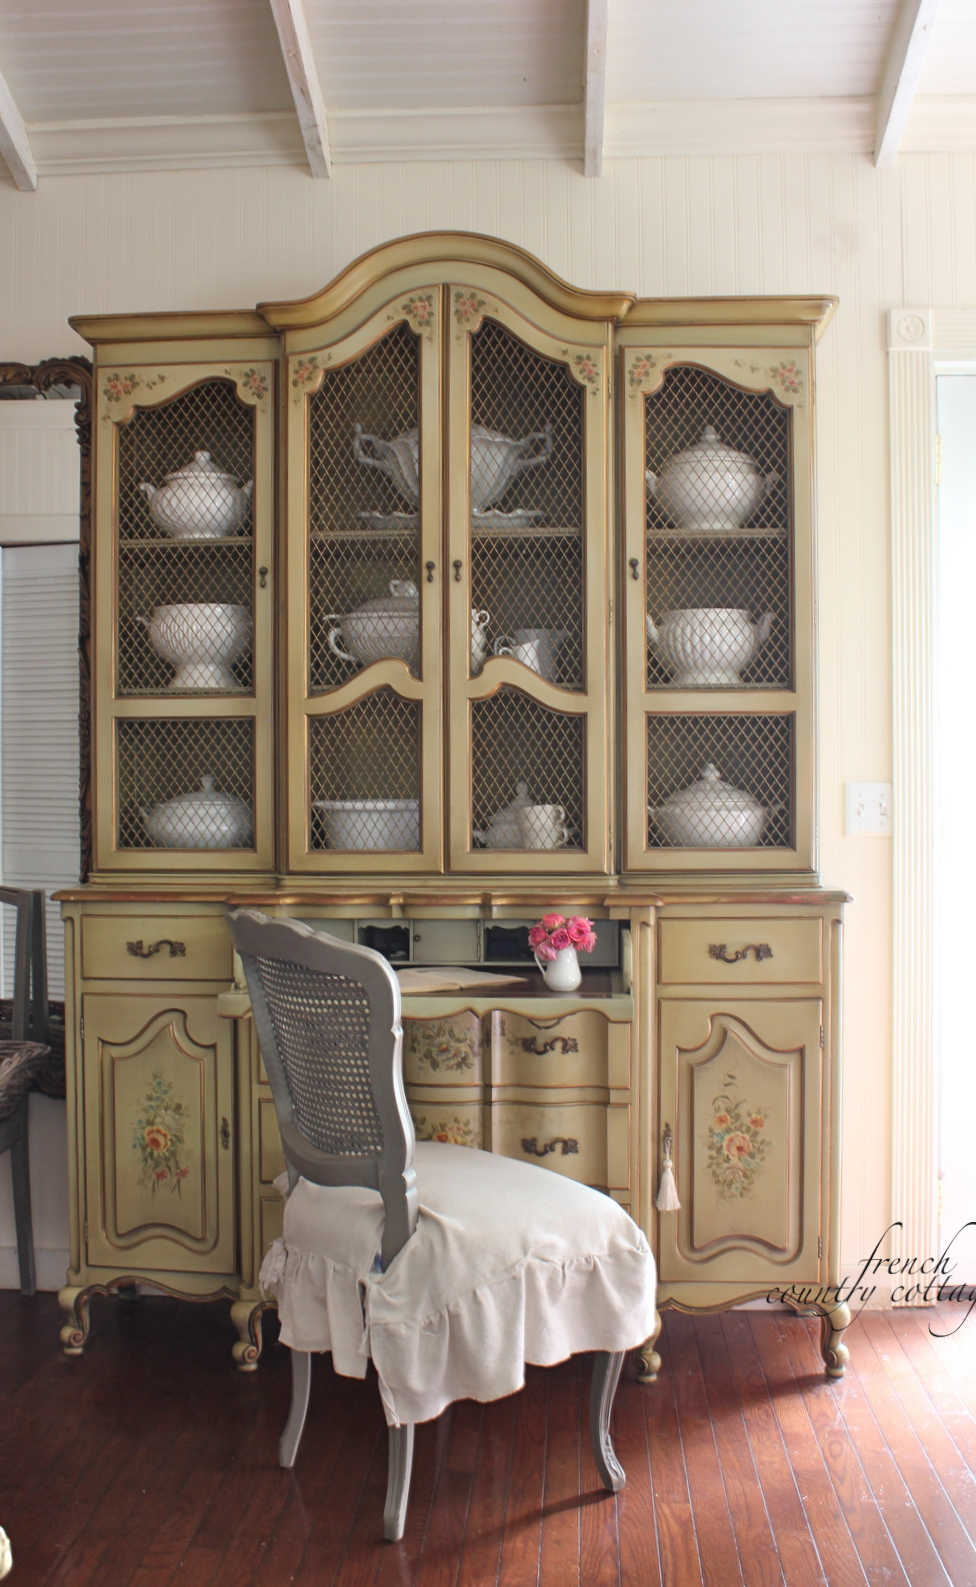 French country china cabinets - French Country China Cabinets 21